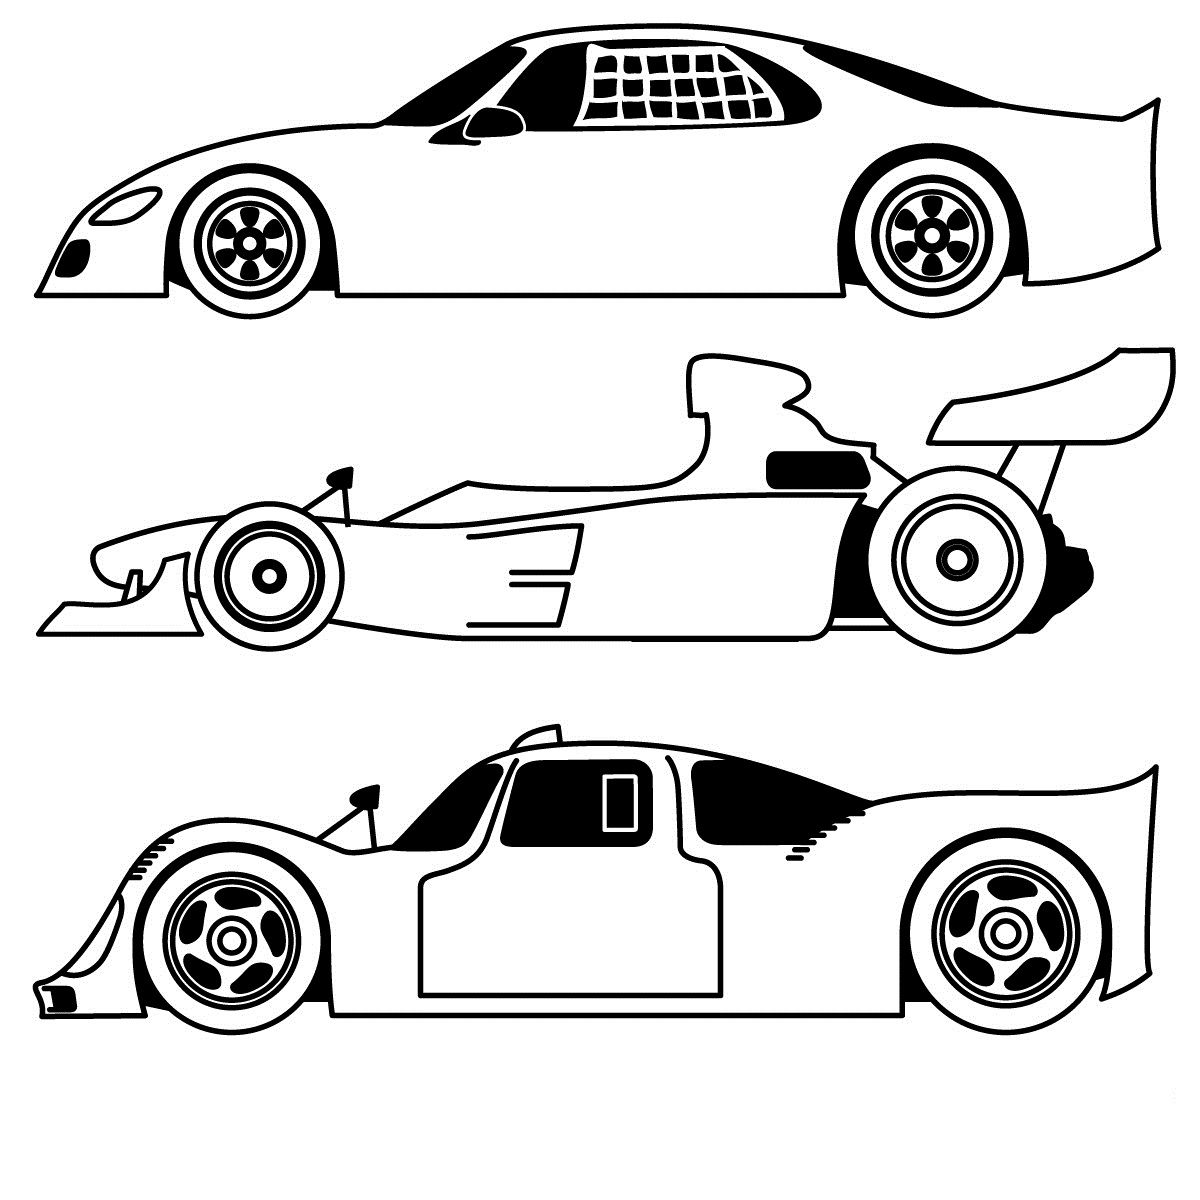 Coloring Rocks Race Car Coloring Pages Sports Coloring Pages Cars Coloring Pages